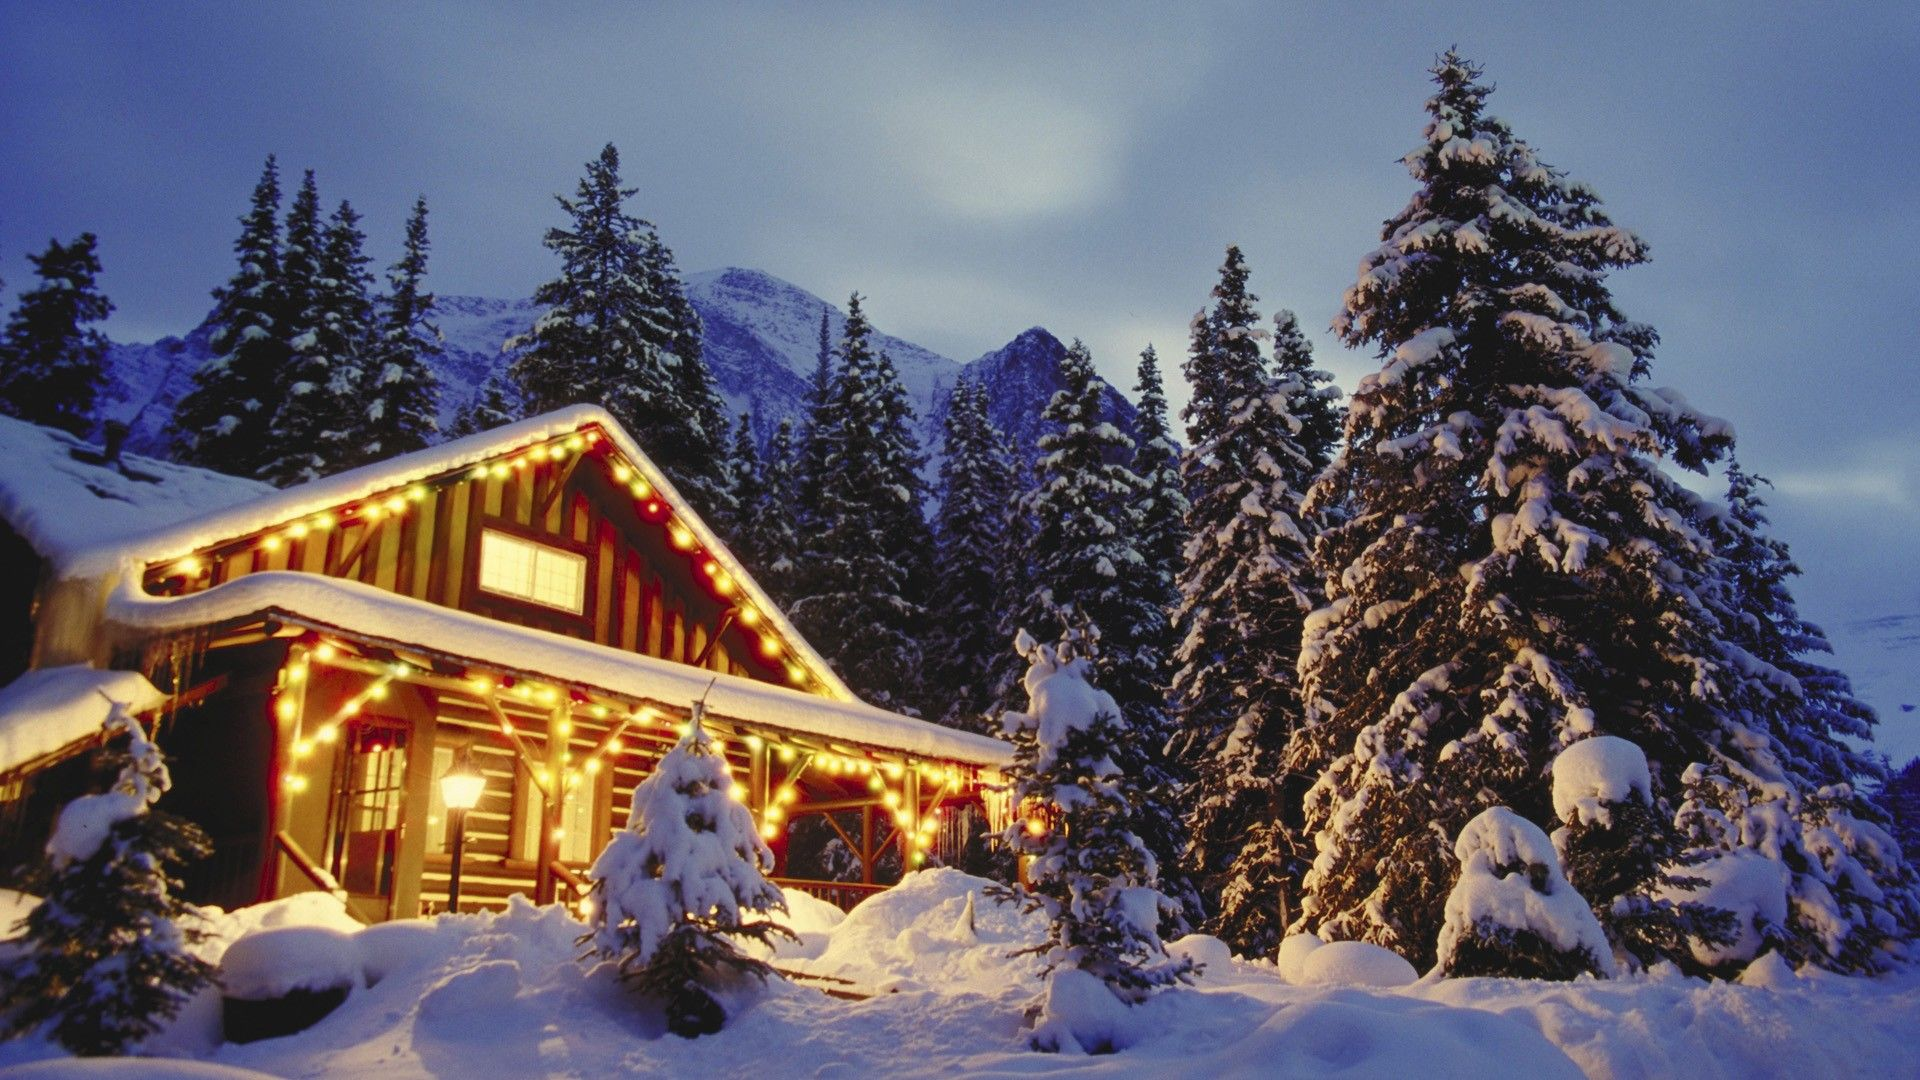 Christmas Special: Vacation rentals by owner in florida, california, hawaii - No booking fee & no service fee